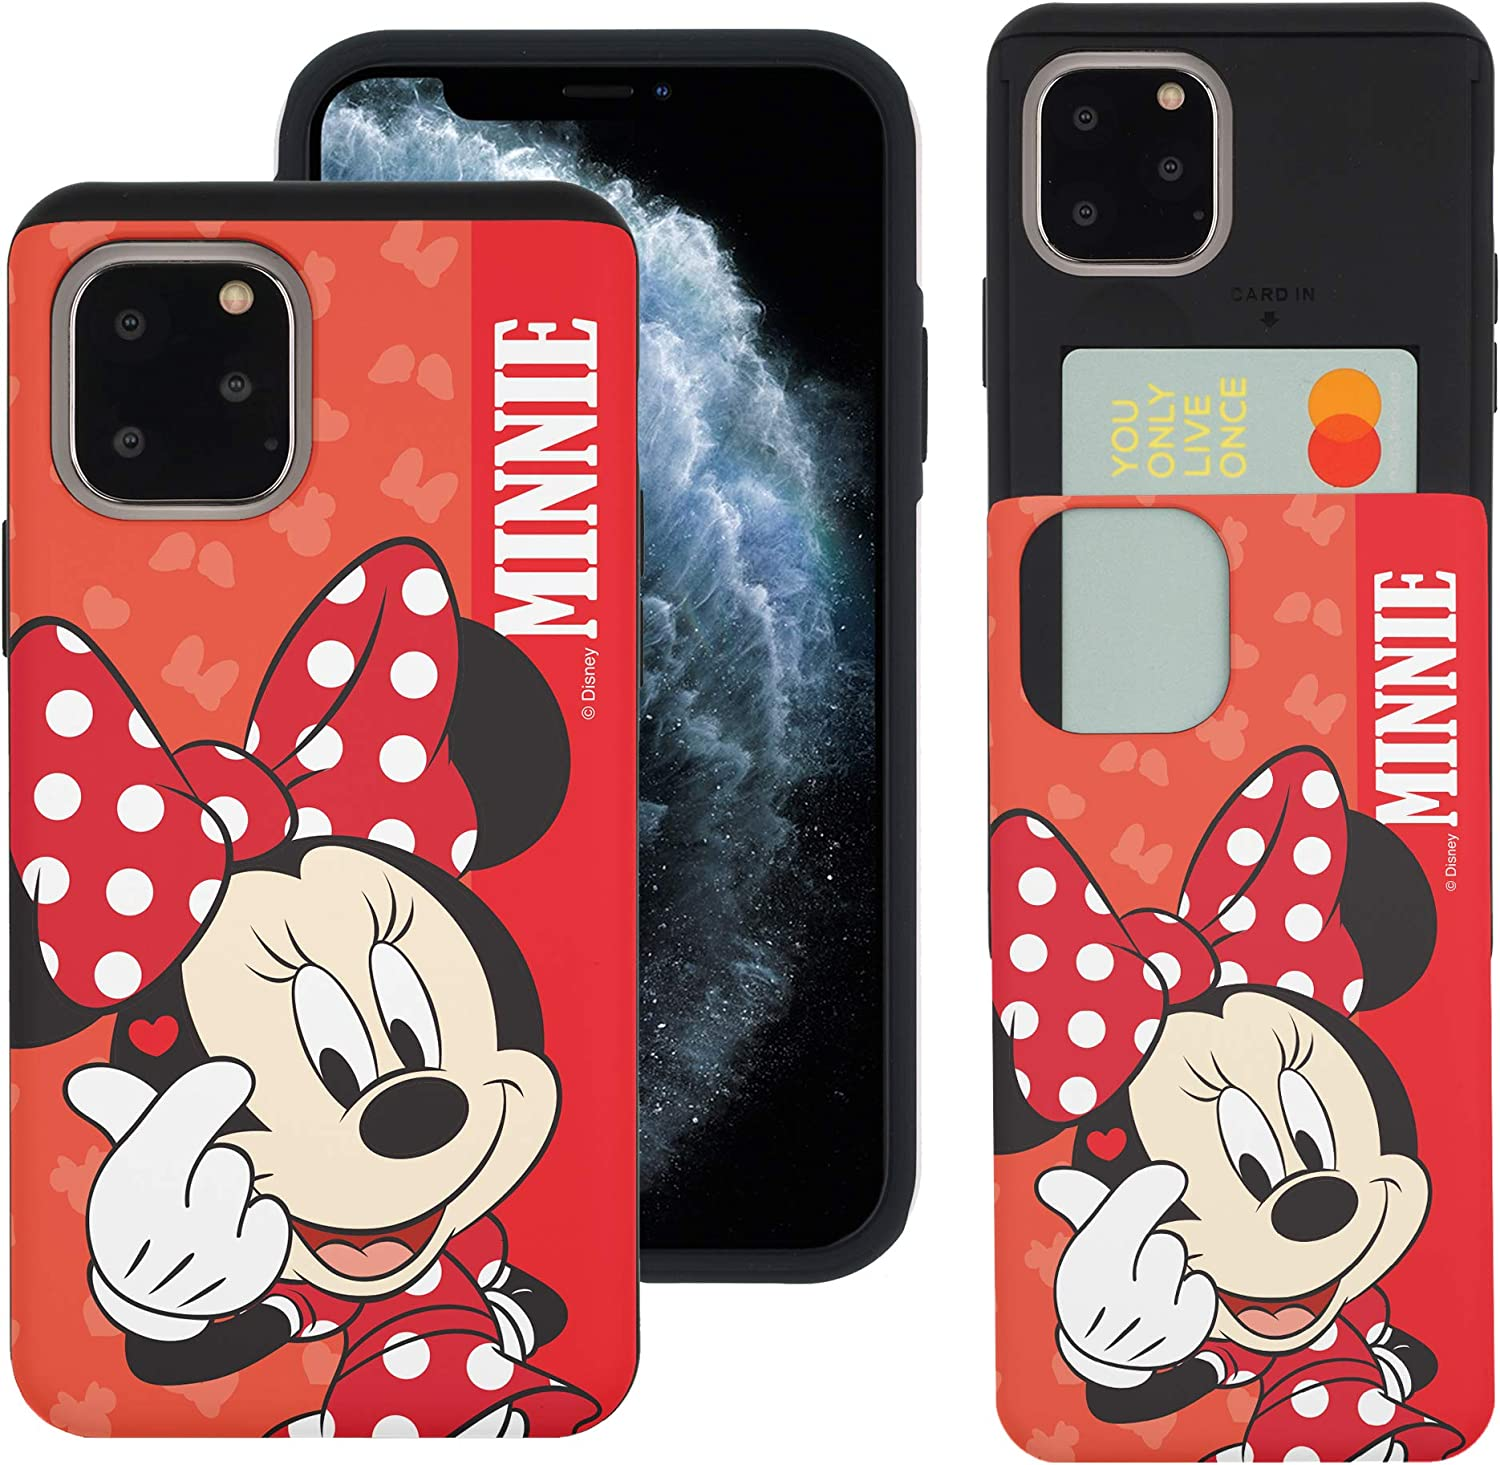 WiLLBee Compatible with iPhone 12 Pro/iPhone 12 Case (6.1inch) Dual Layer Card Slide Slot Wallet Bumper Cover - Heart Minnie Mouse